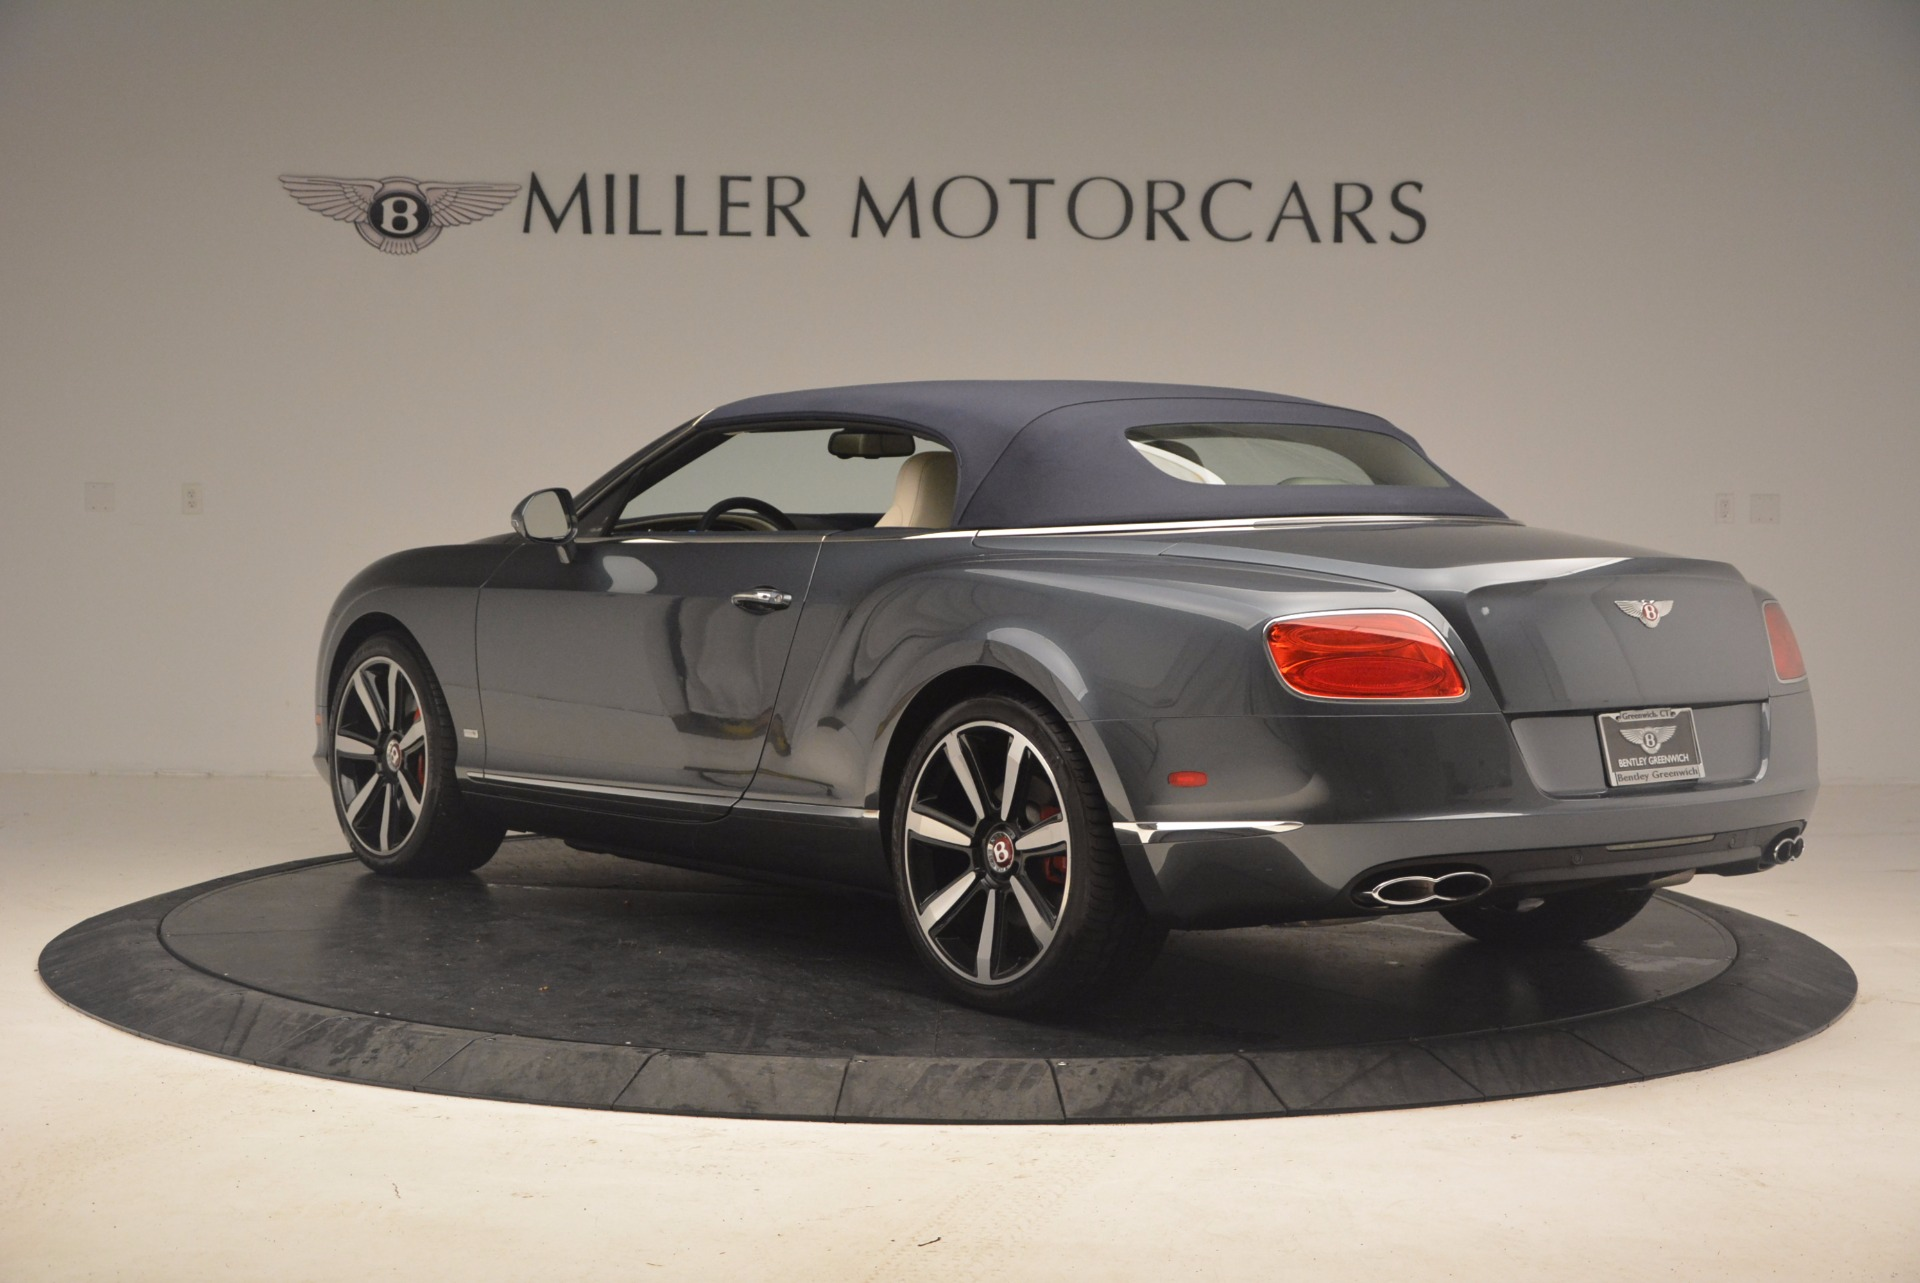 Used 2013 Bentley Continental GT V8 Le Mans Edition, 1 of 48 For Sale In Westport, CT 1288_p17